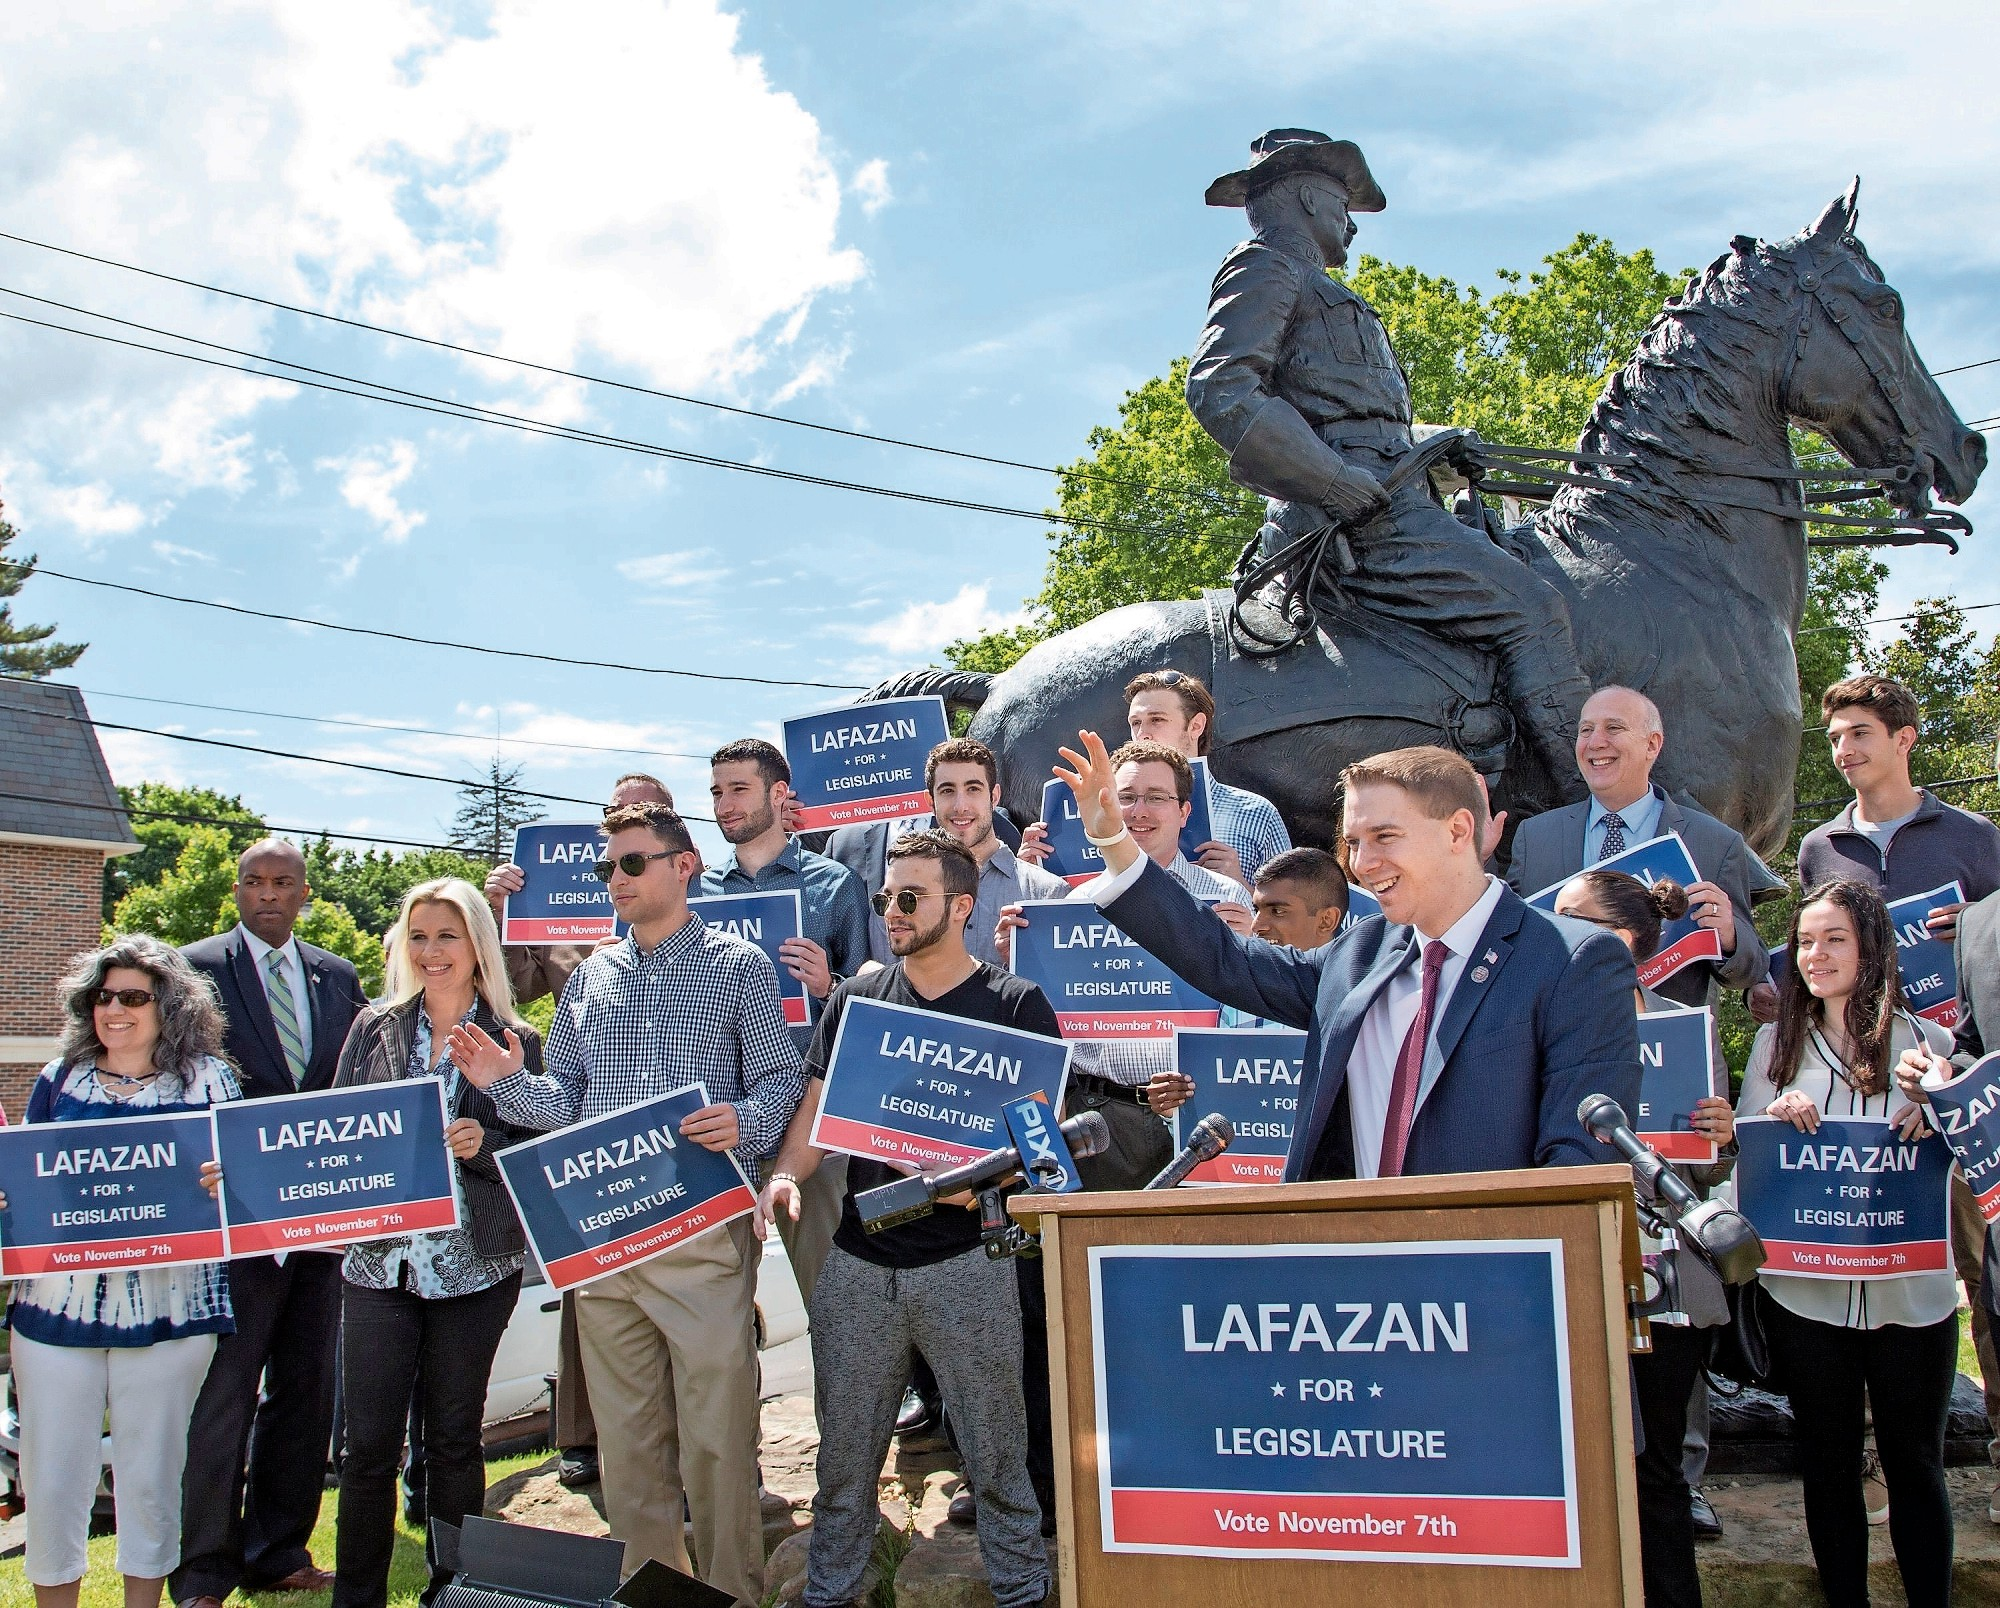 Joshua Lafazan announced his candidacy for legislator in front of the bronze Theodore Roosevelt statue in Oyster Bay.